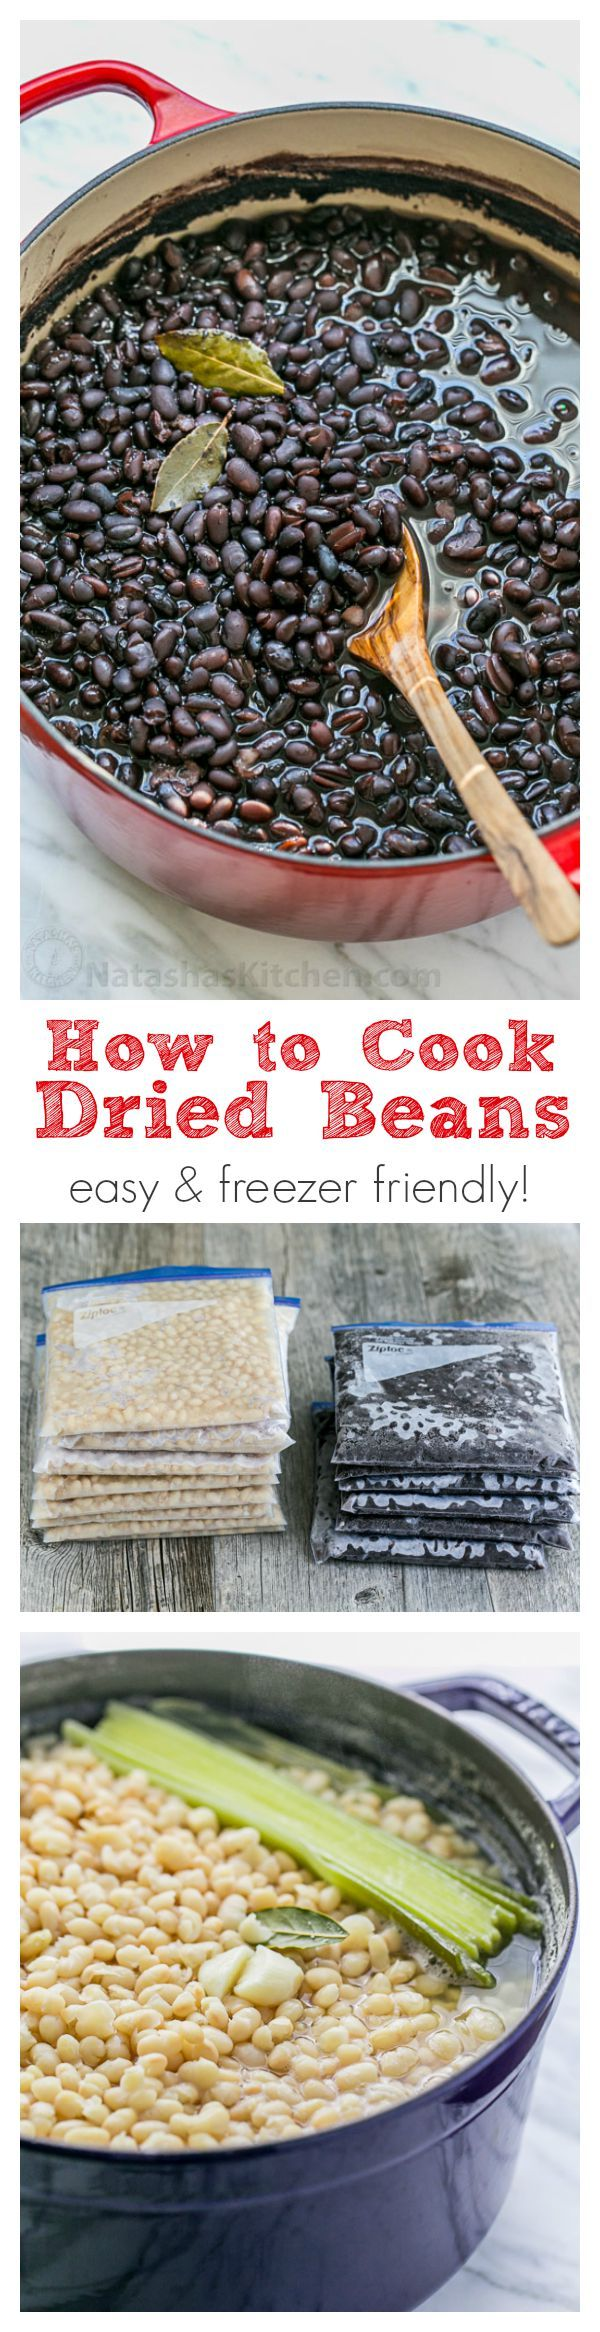 How to Cook Dried Beans: Easy and freezer friendly! Home cooked beans can be used for any recipe that calls for canned beans | natashaskitchen.com